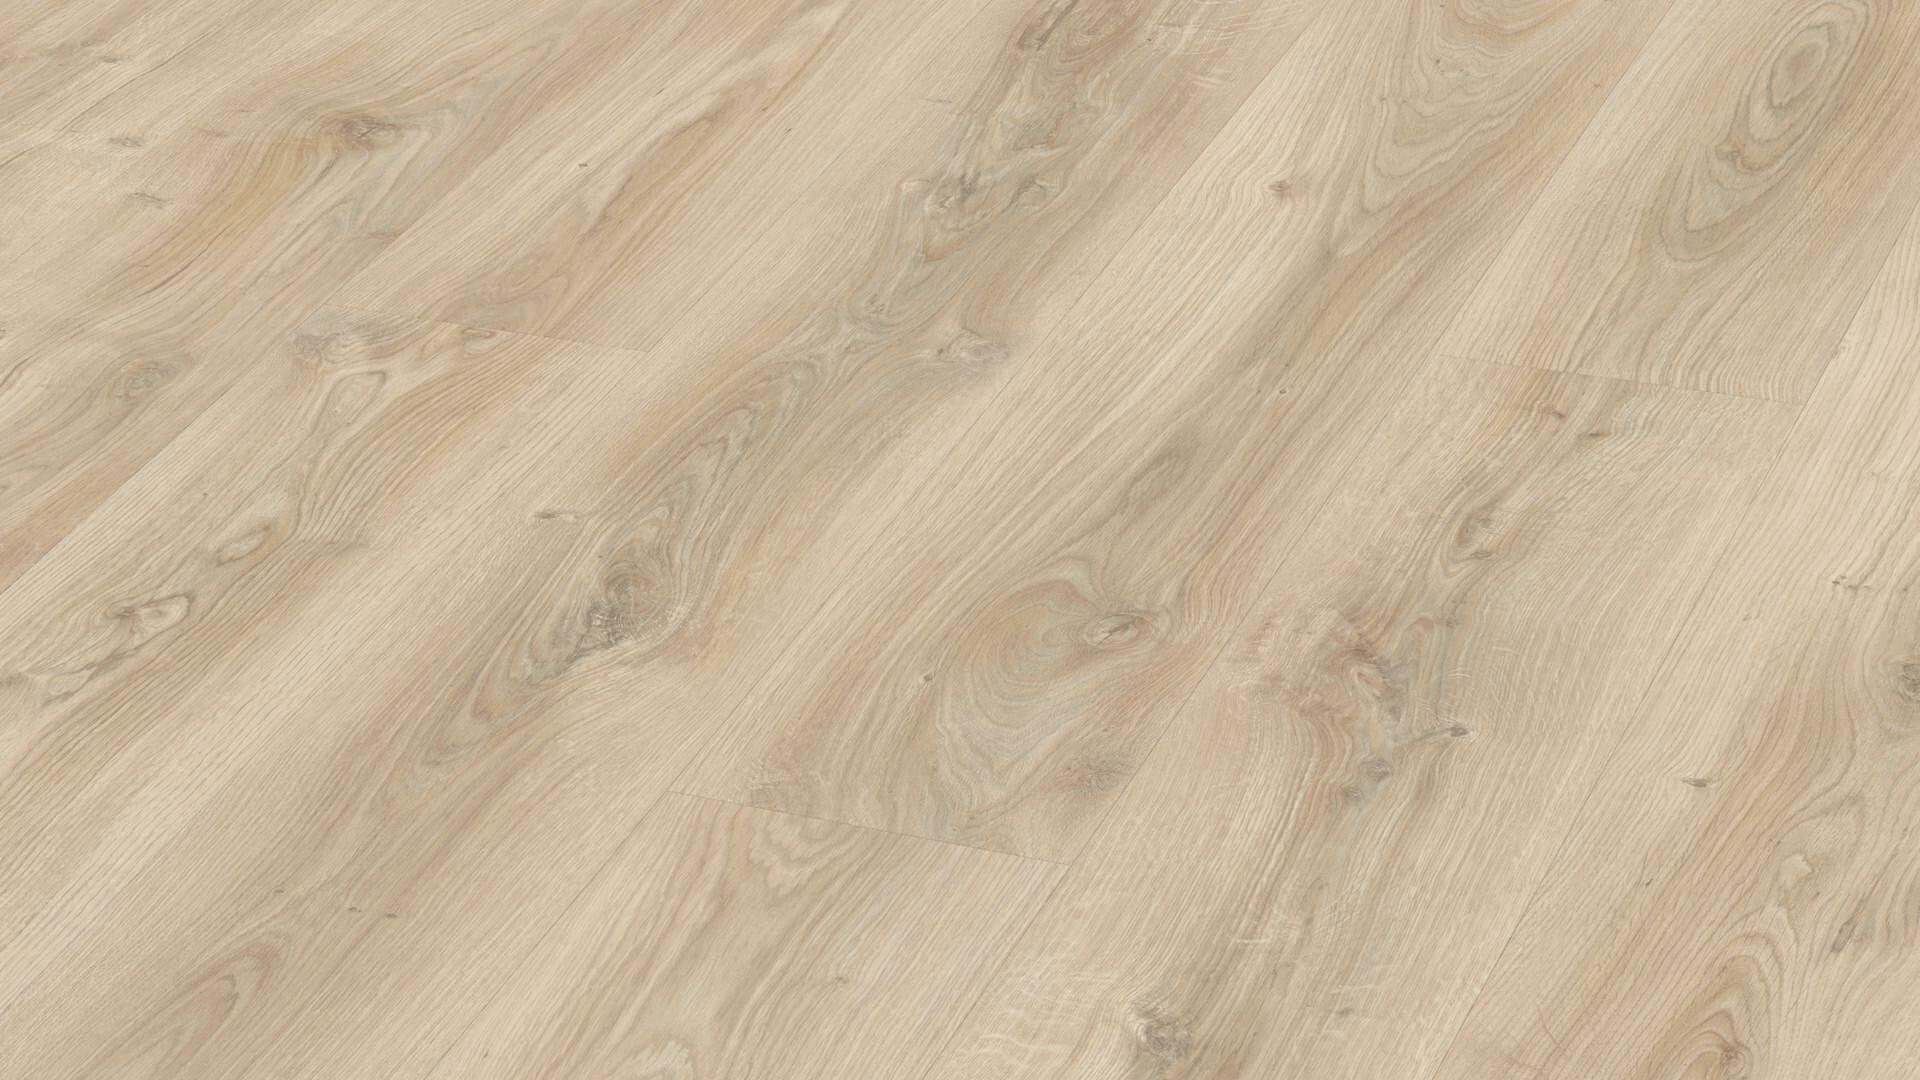 Design flooring MeisterDesign. comfort DL 600 S Pure castle oak 6840